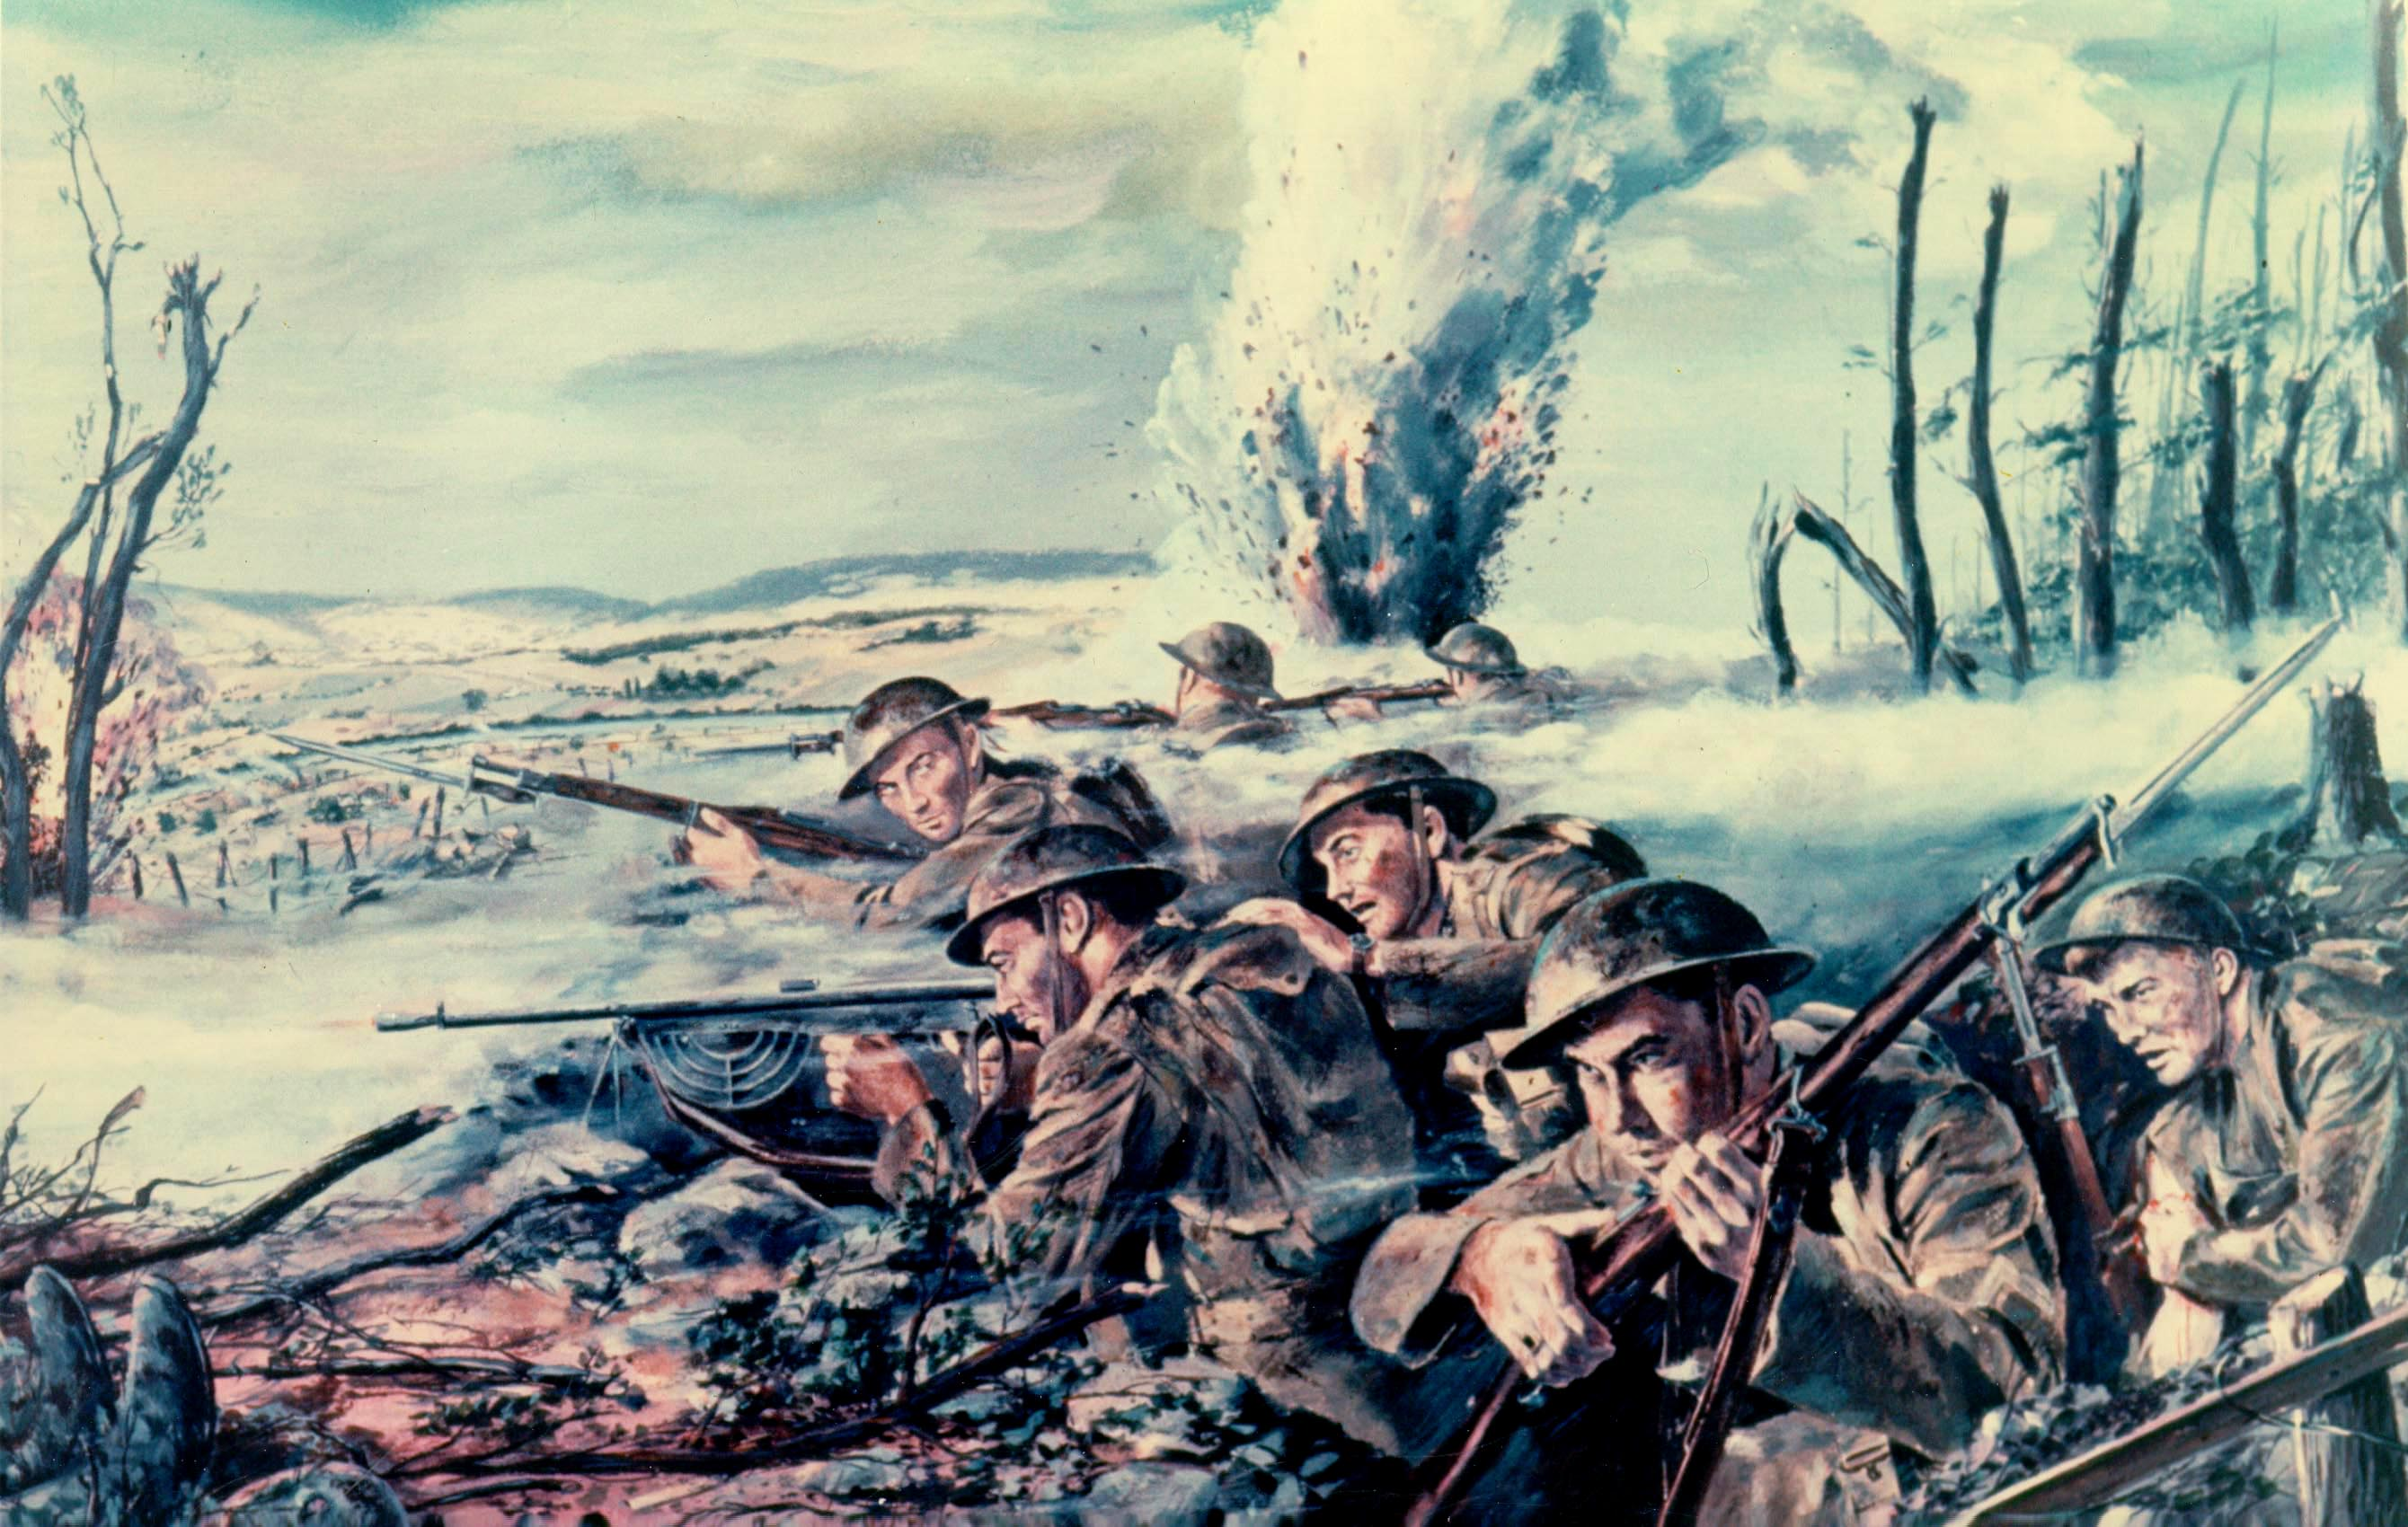 Us Army To Spend 600k On World War I Art